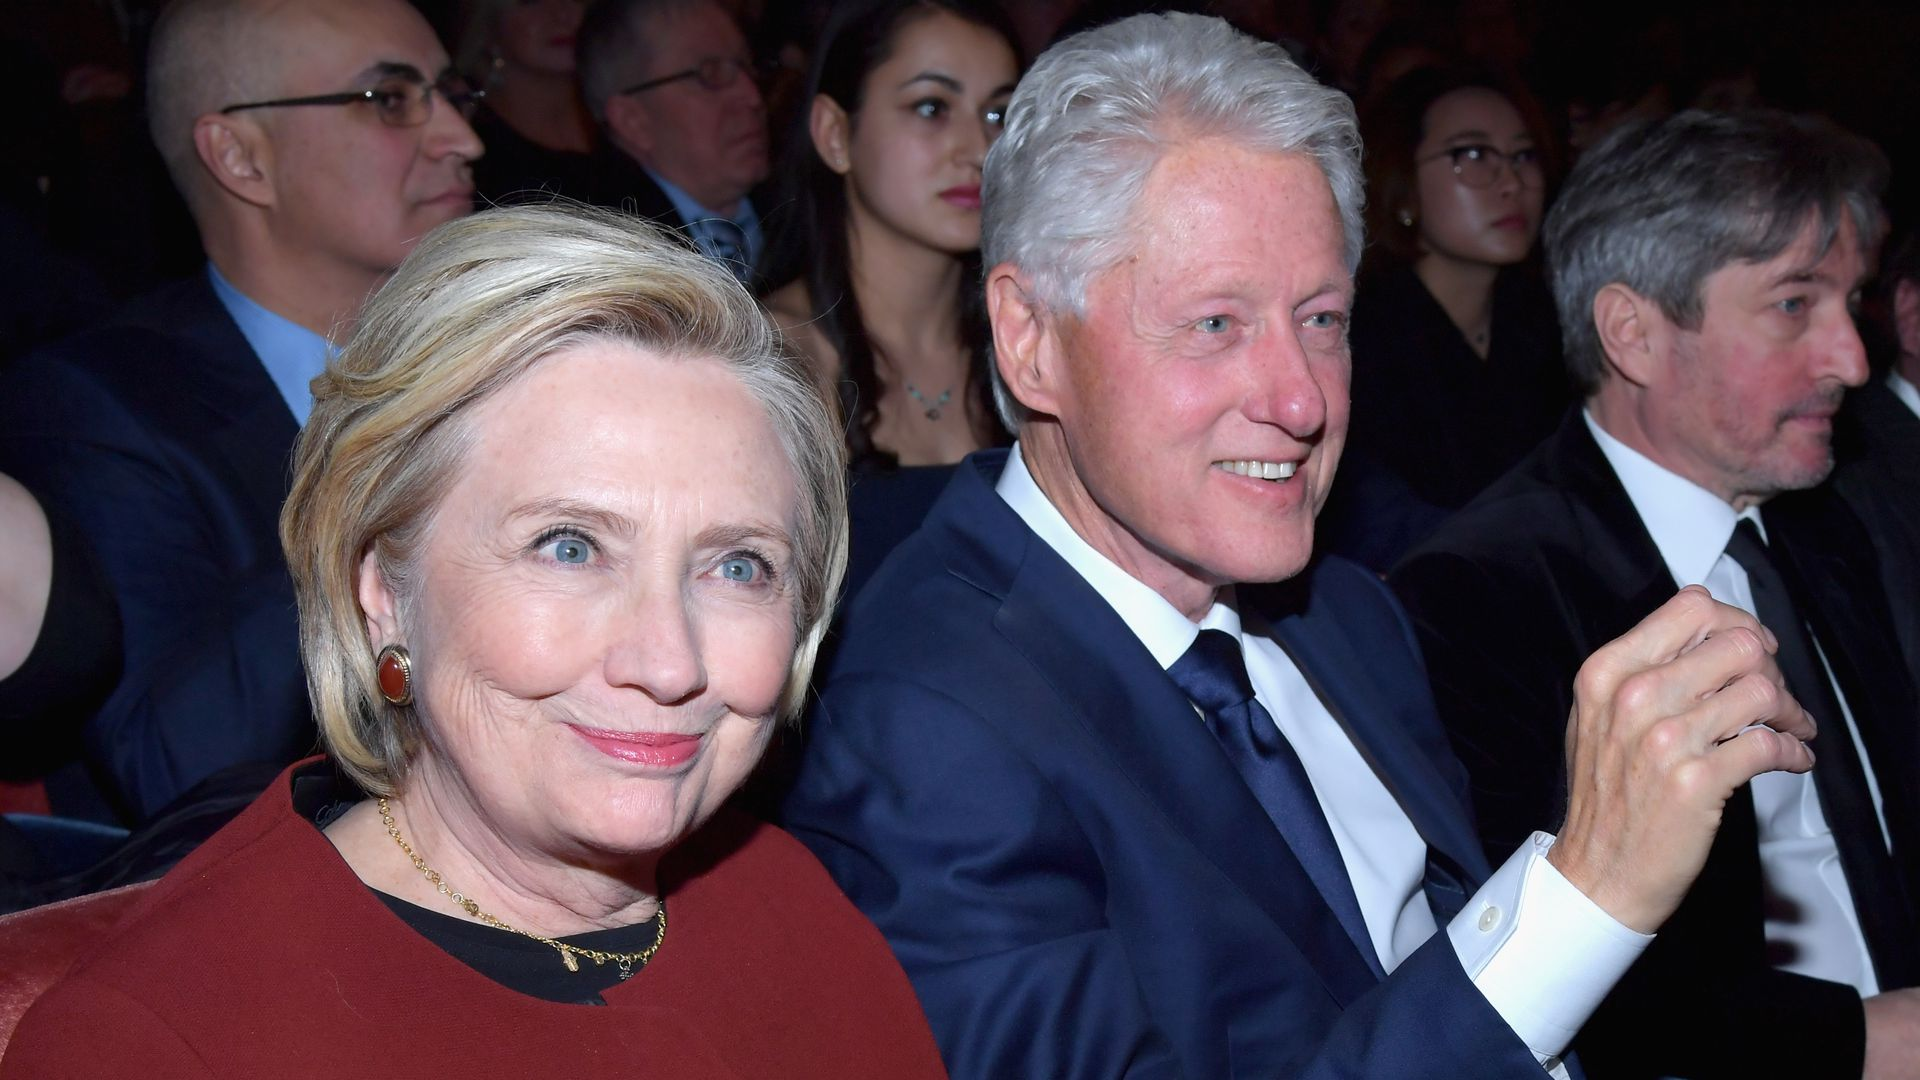 Hillary and Bill Clinton at an awards show